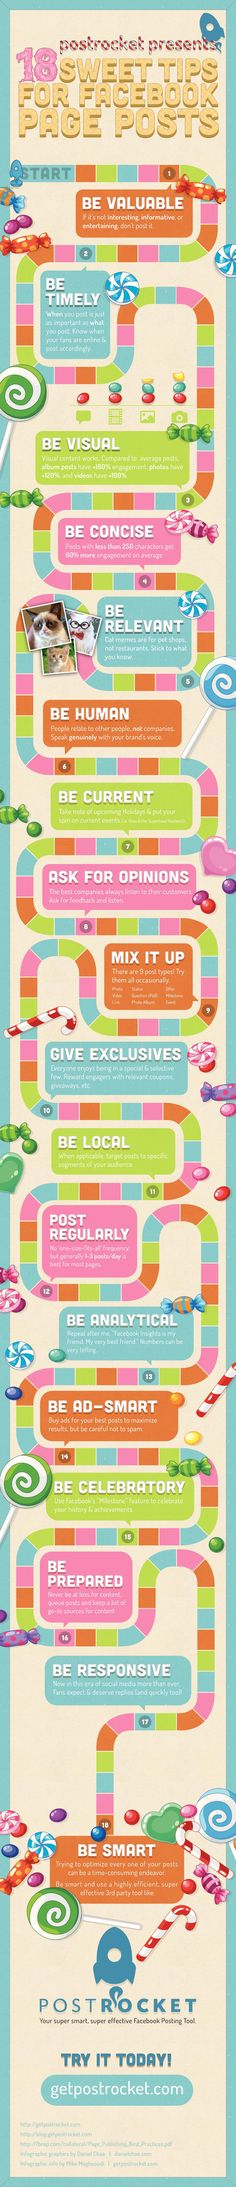 18 sweet tips for Facebook